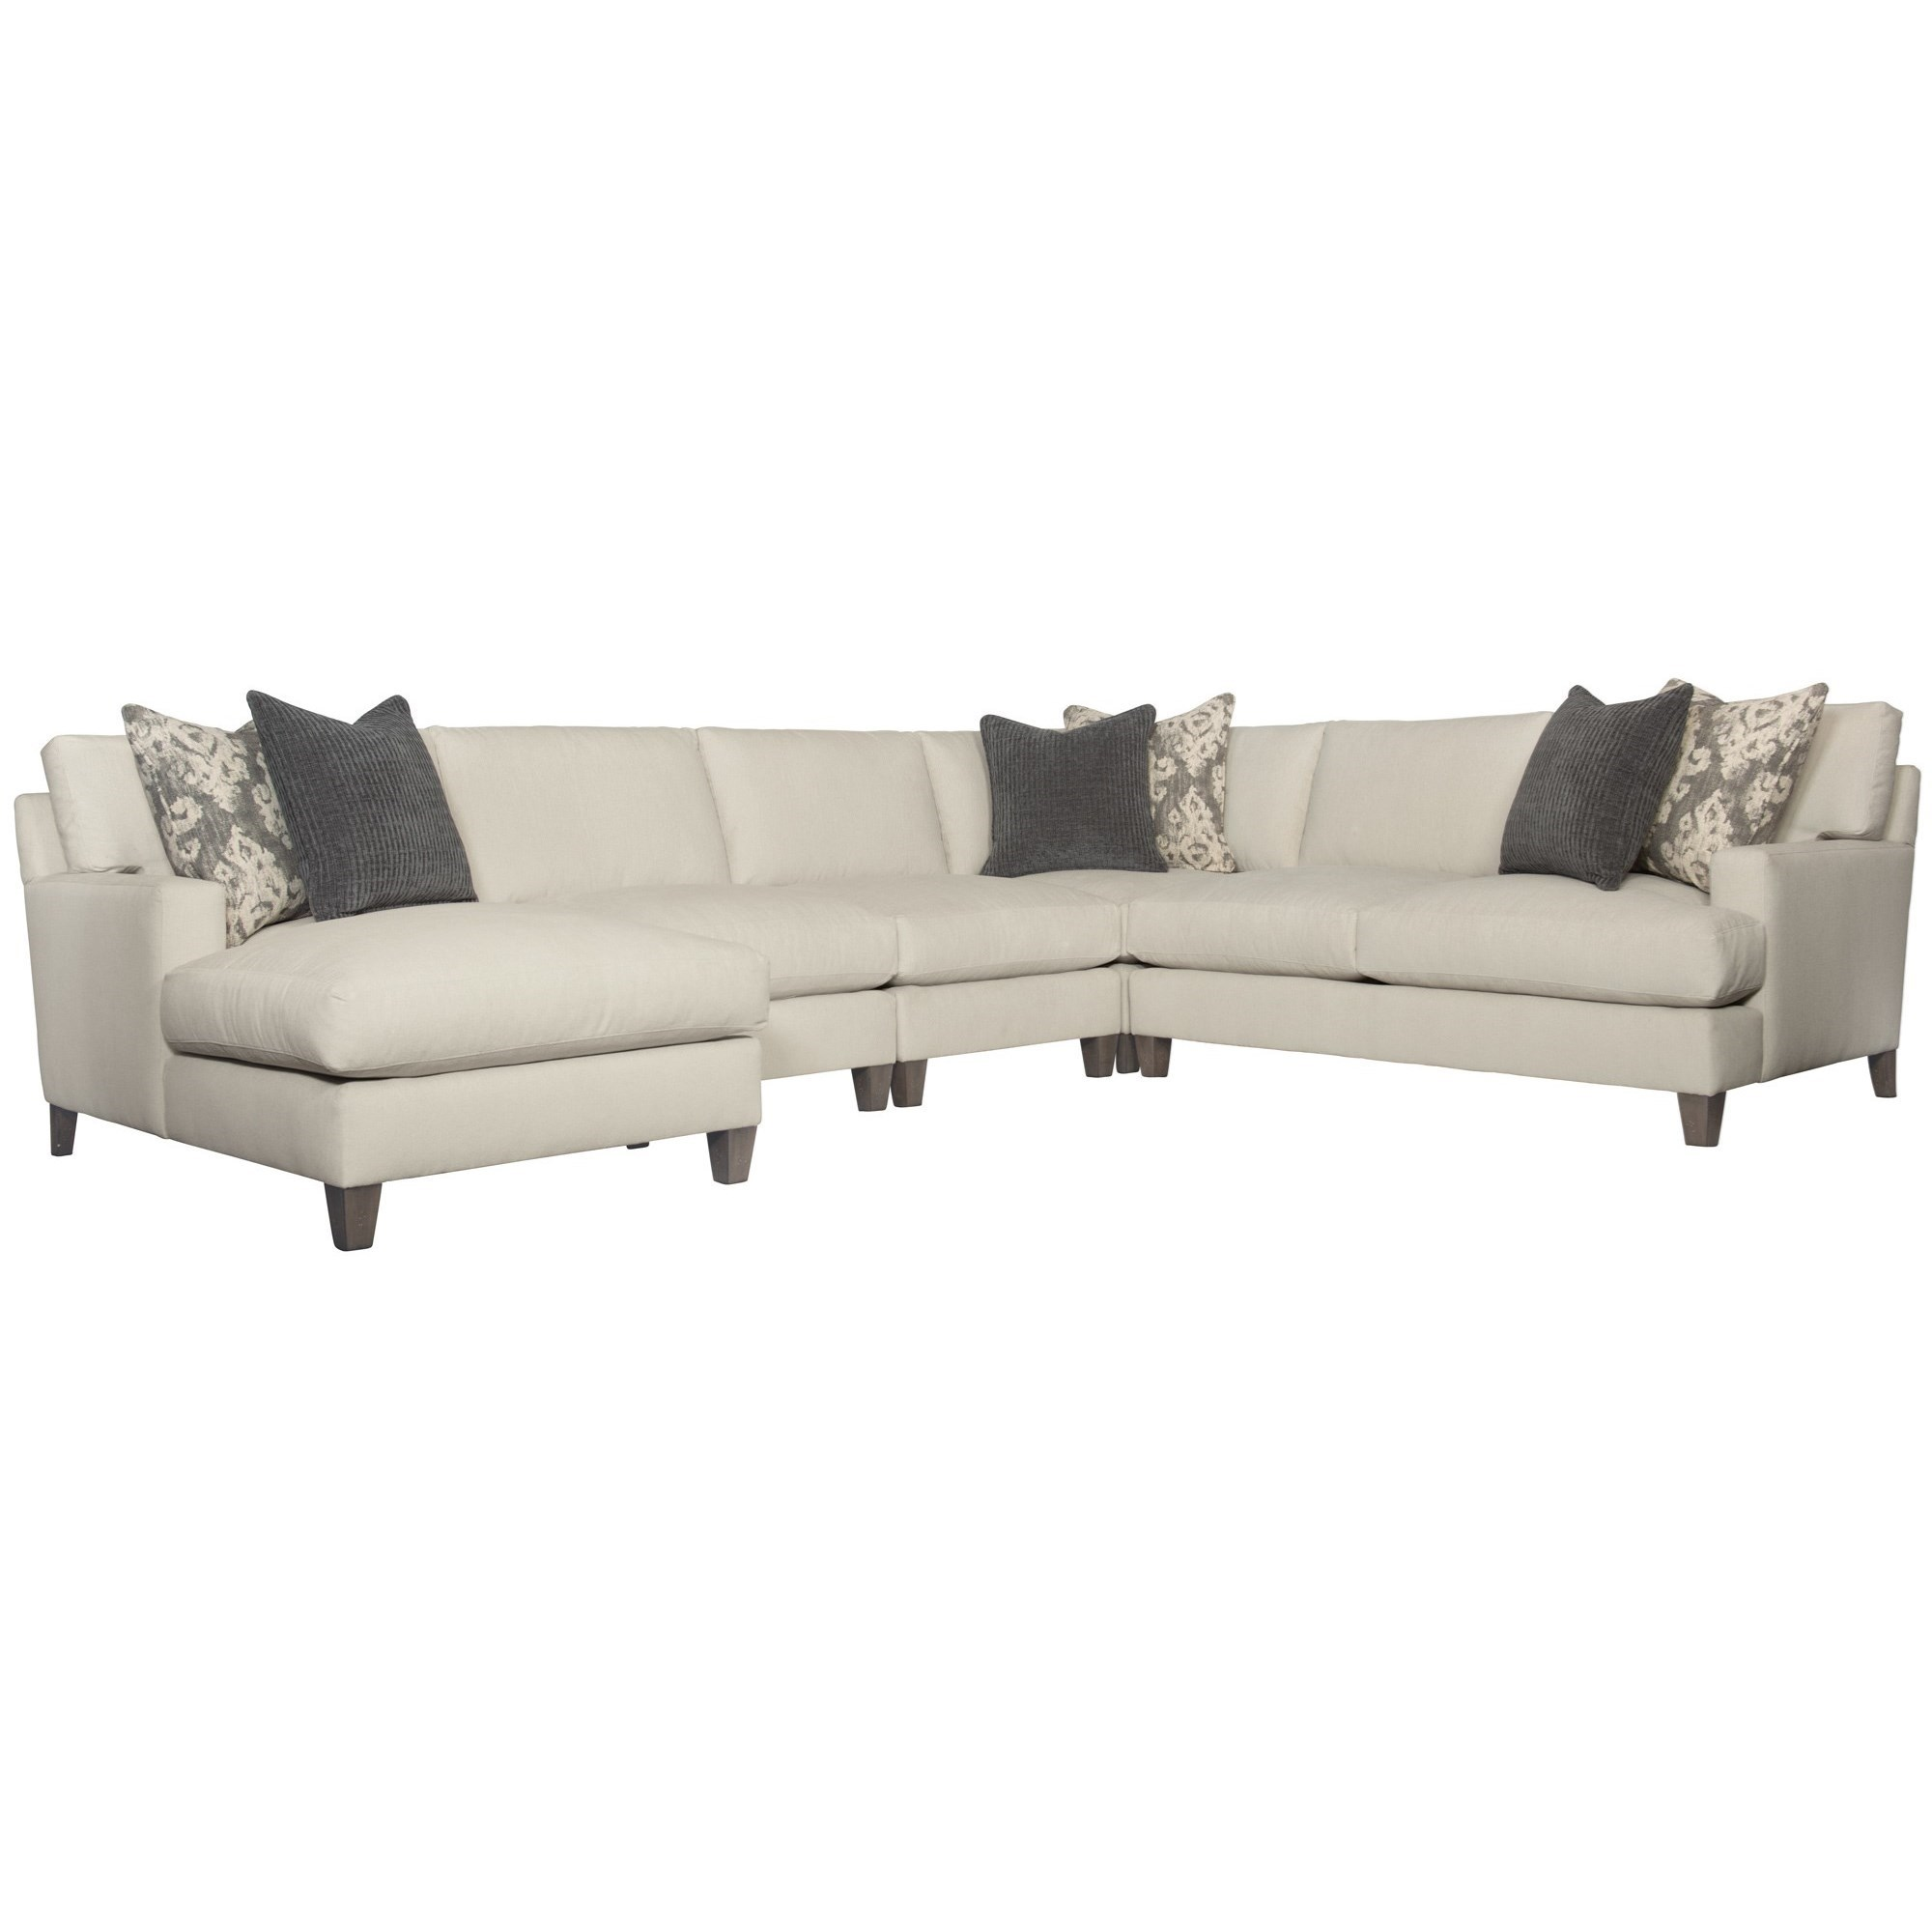 Transitional 5-Piece Sectional with Exposed Wood Legs